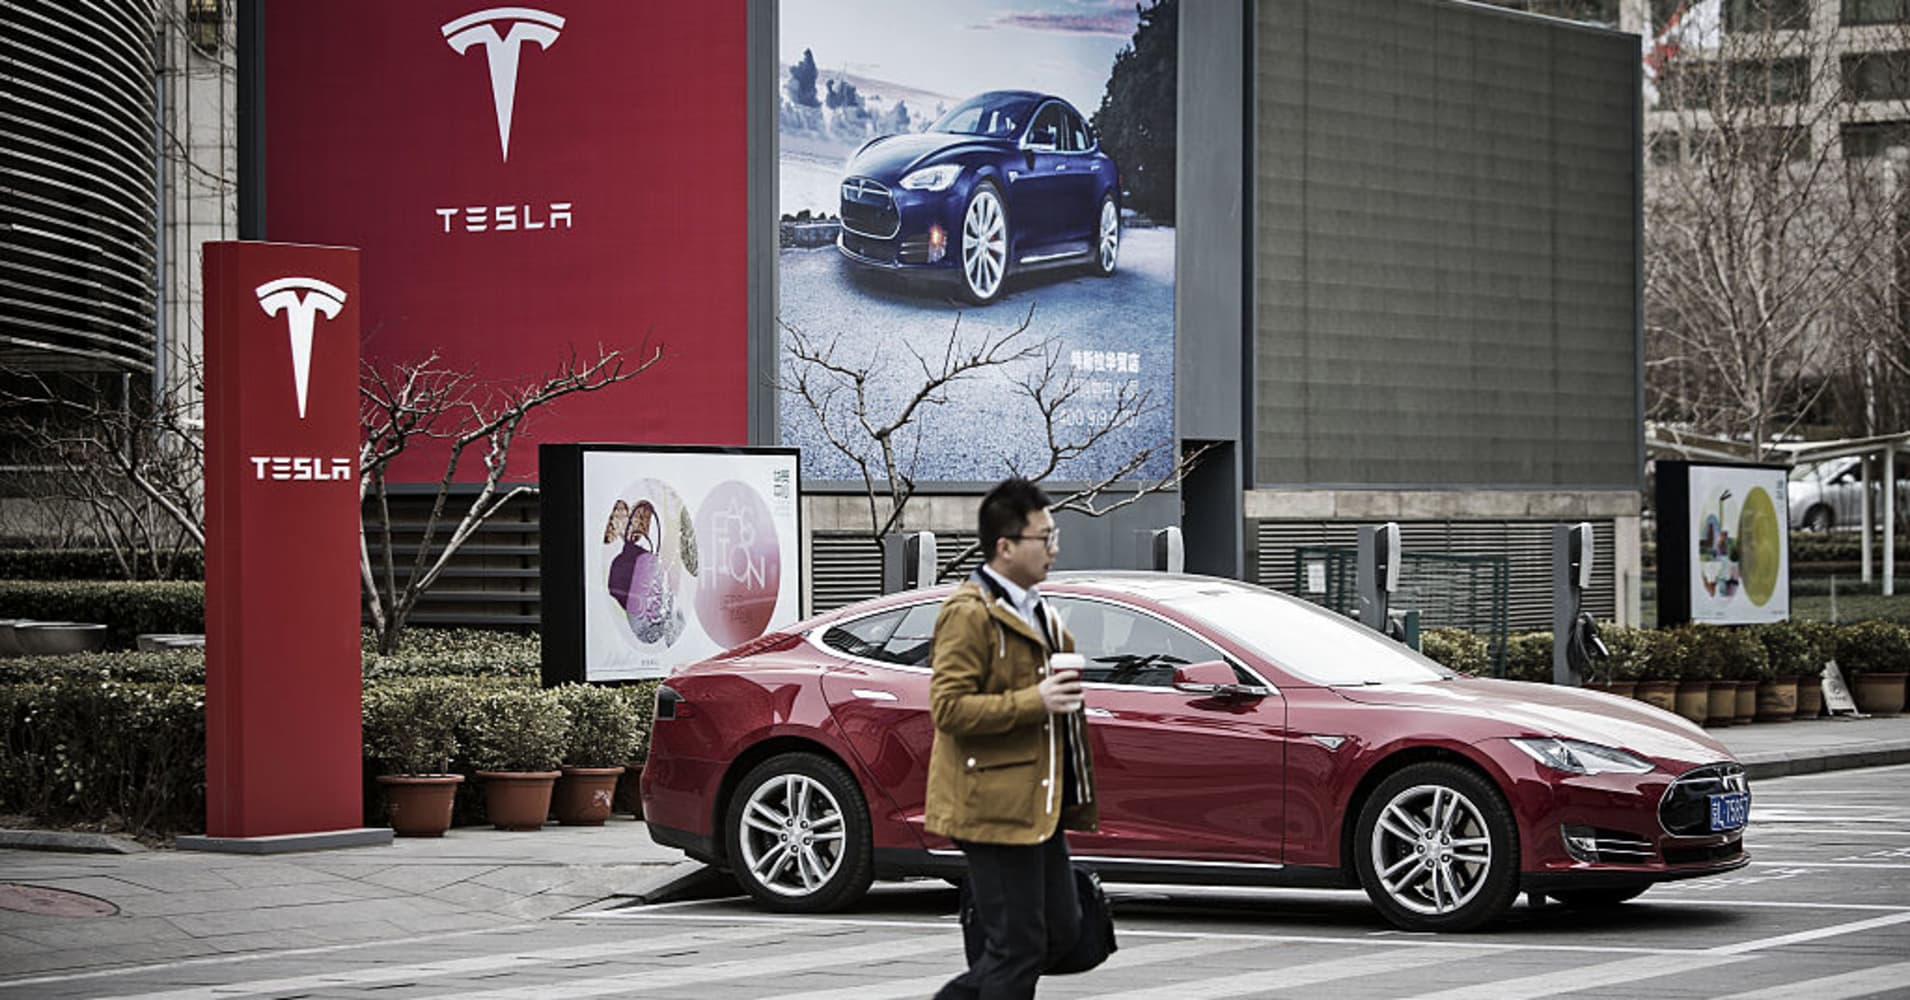 Tesla's China factory is set to begin production late next year, Shanghai government says